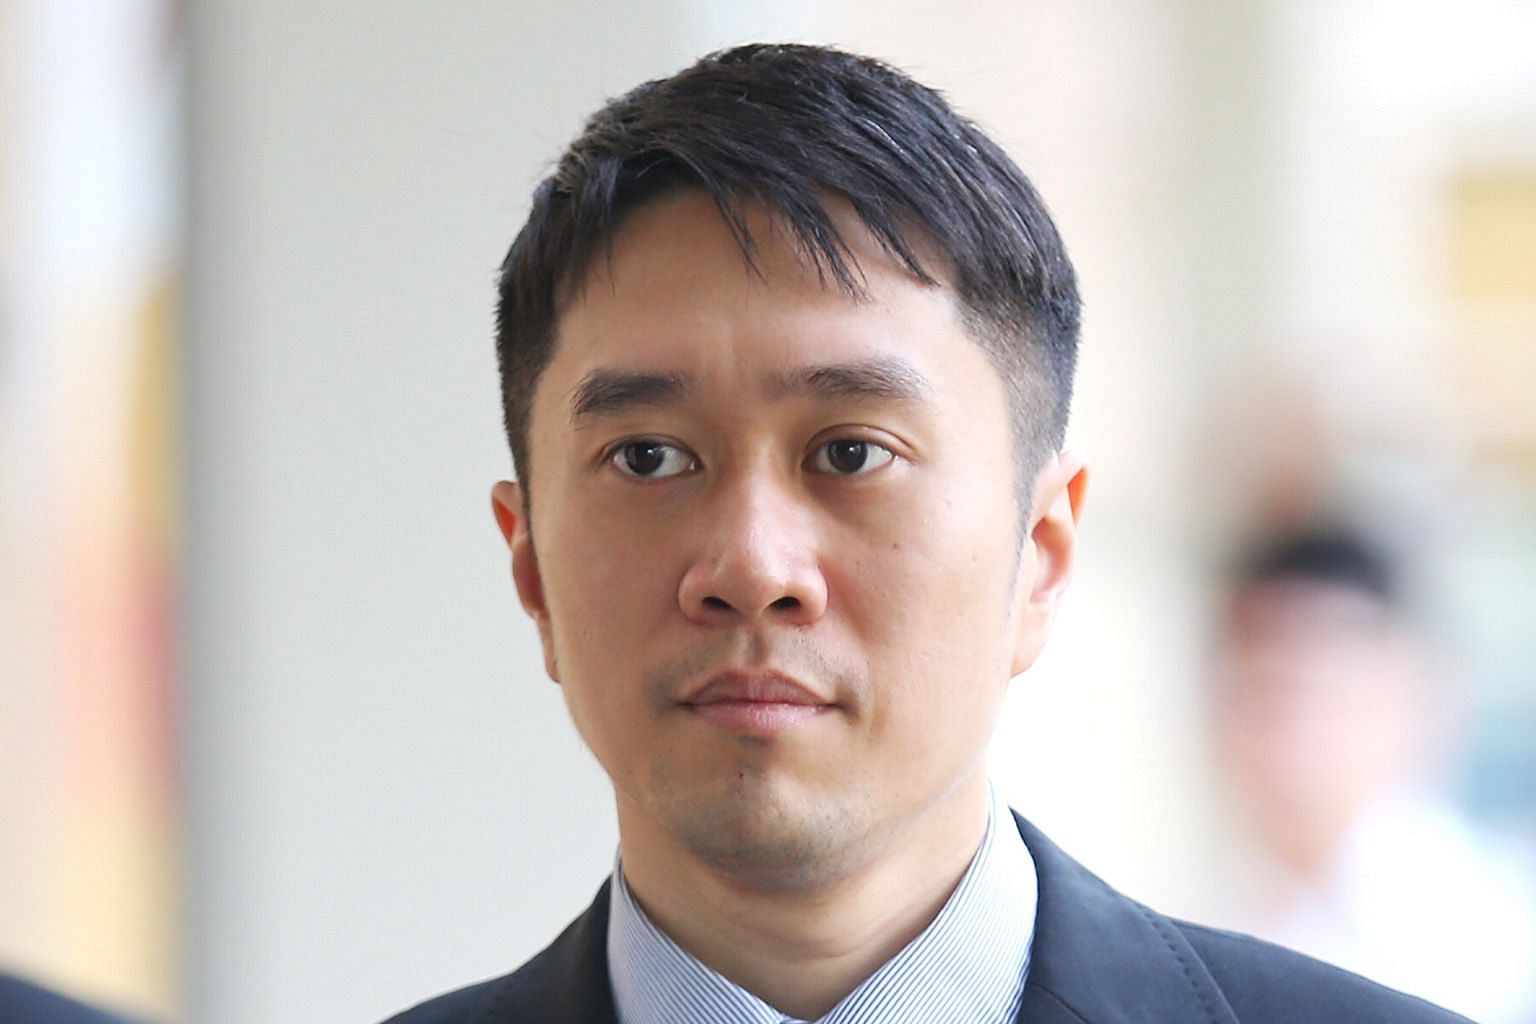 Civil activist Jolovan Wham is alleged to have made a contemptuous post in April stating that Singapore's courts are not as independent as Malaysia's on cases with political implications.